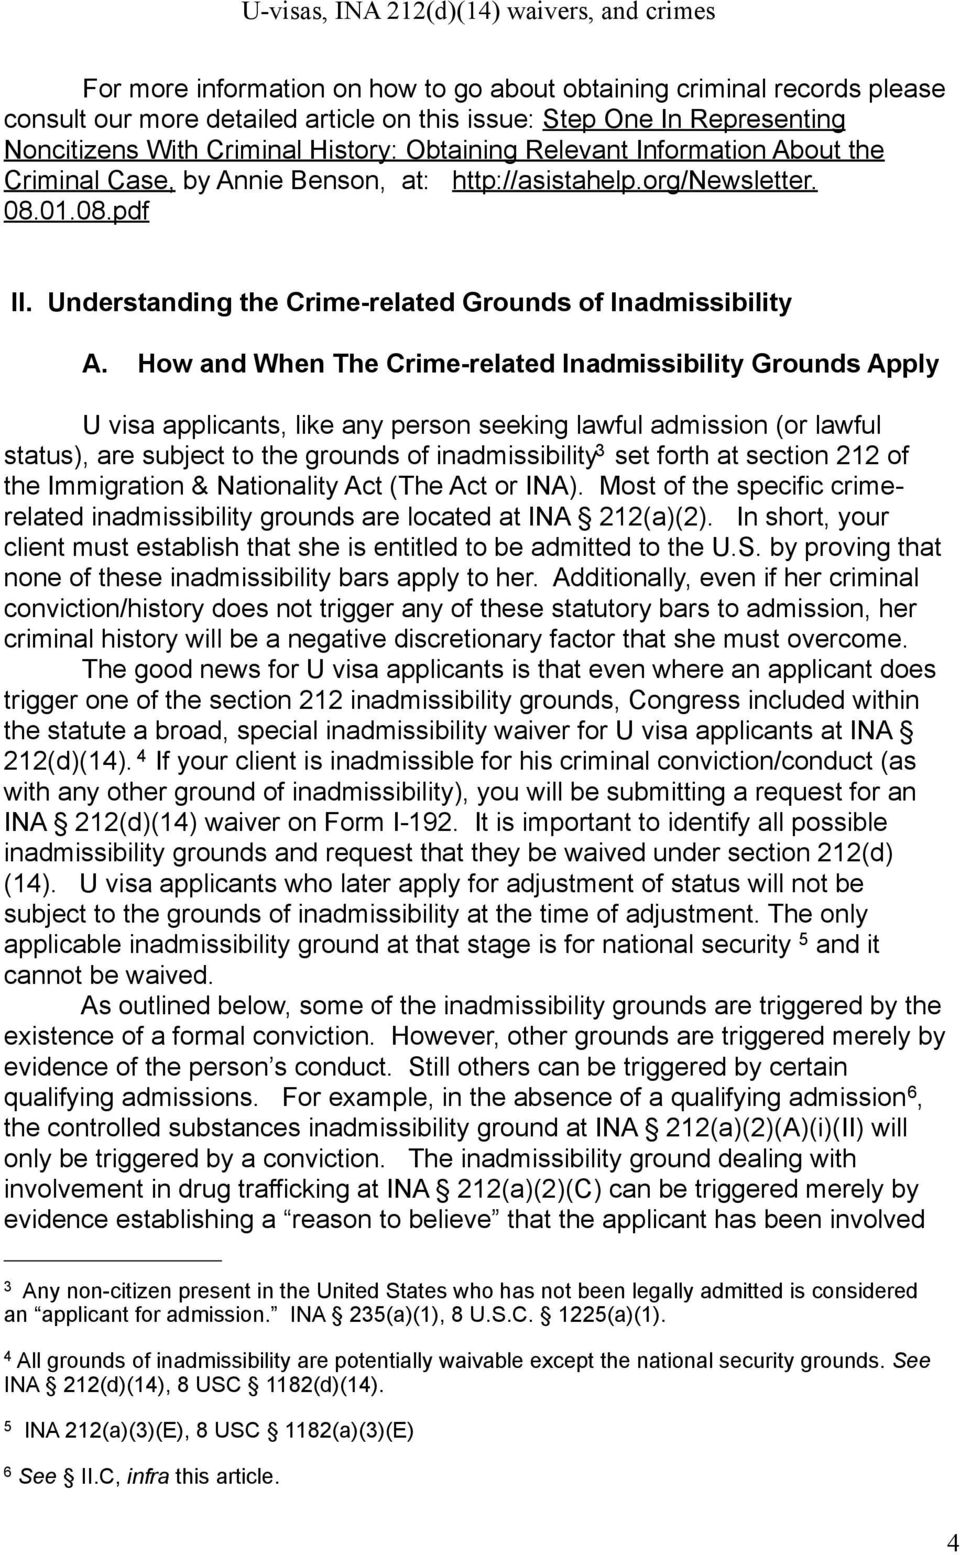 How and When The Crime-related Inadmissibility Grounds Apply U visa applicants, like any person seeking lawful admission (or lawful status), are subject to the grounds of inadmissibility 3 set forth